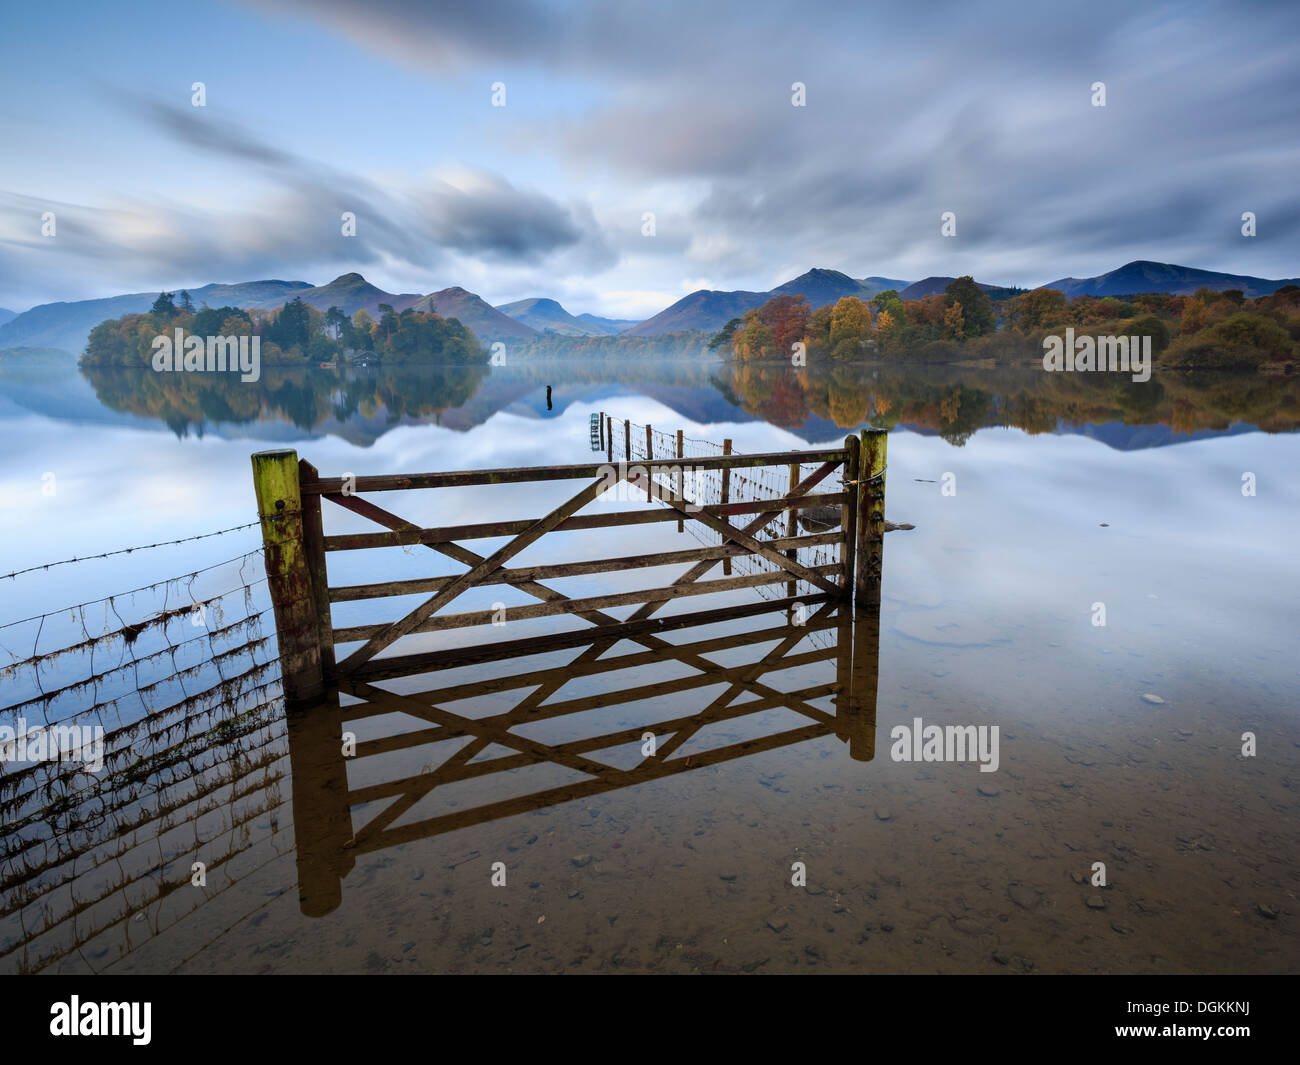 A gate and fence in a flooded field by Derwent Water near Keswick. - Stock Image